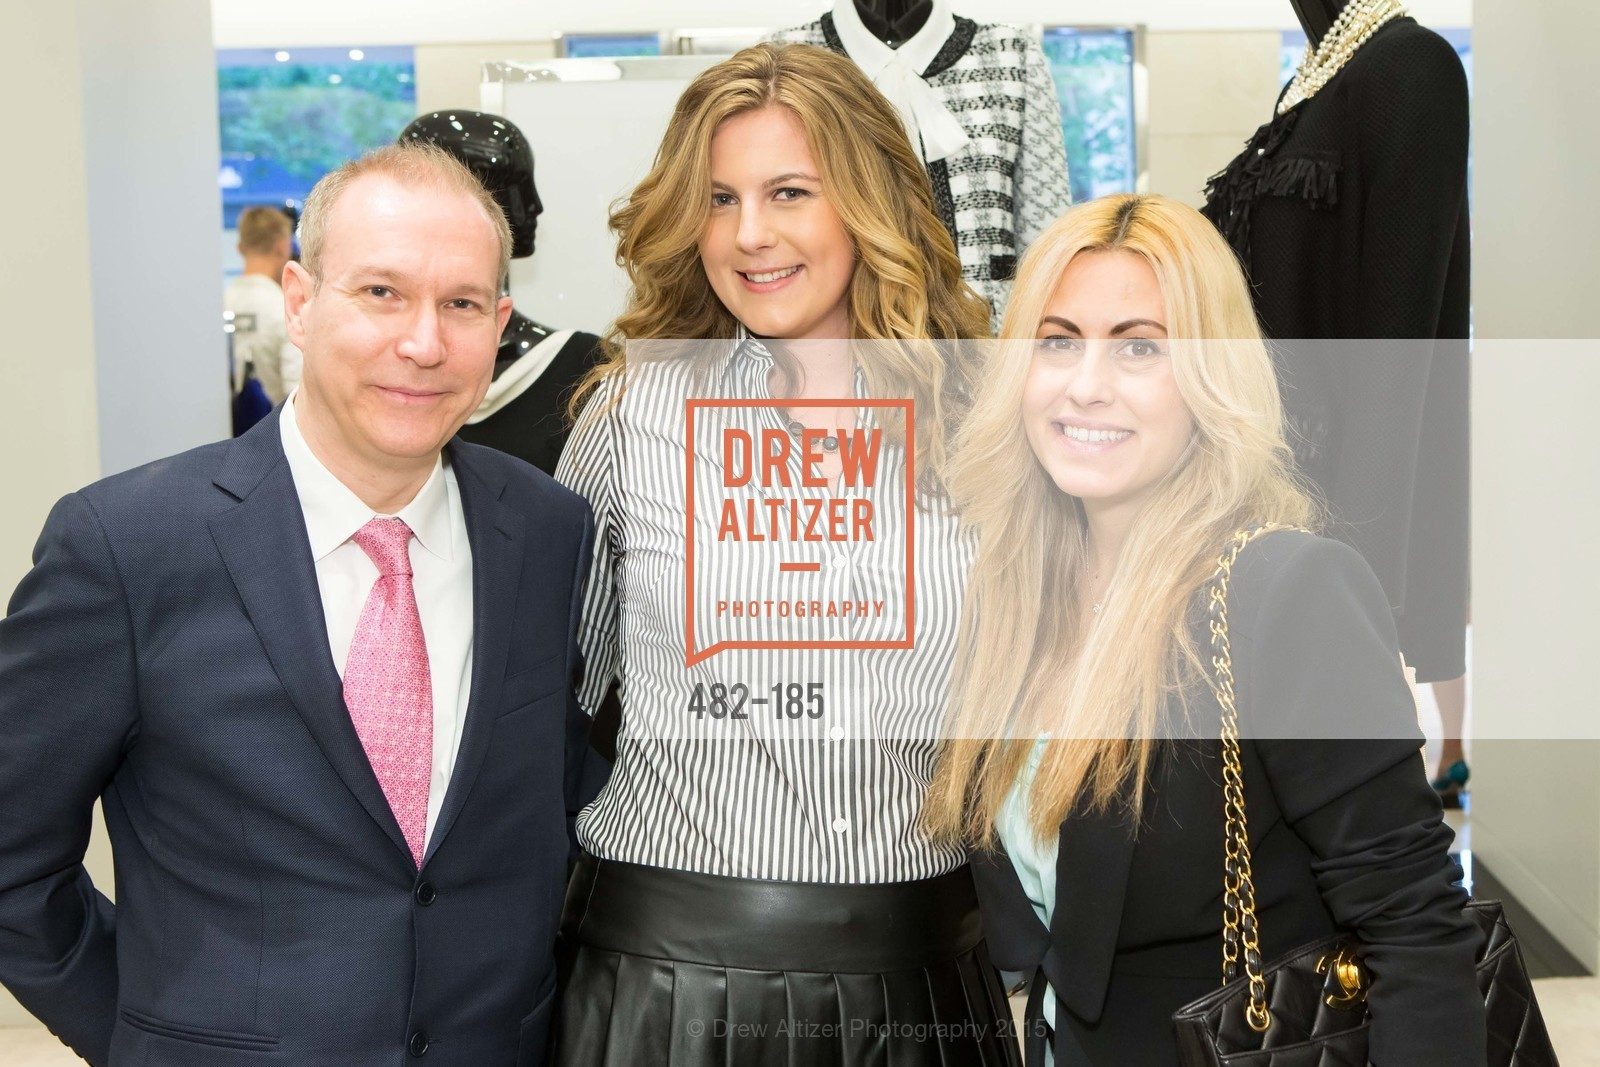 Daniel de Millais, Brittany O'leary, Kimber Frankel, Fashion Fights Arthritis Launch Party at St. John, St. John Boutique. 767 Market Street, June 25th, 2015,Drew Altizer, Drew Altizer Photography, full-service agency, private events, San Francisco photographer, photographer california